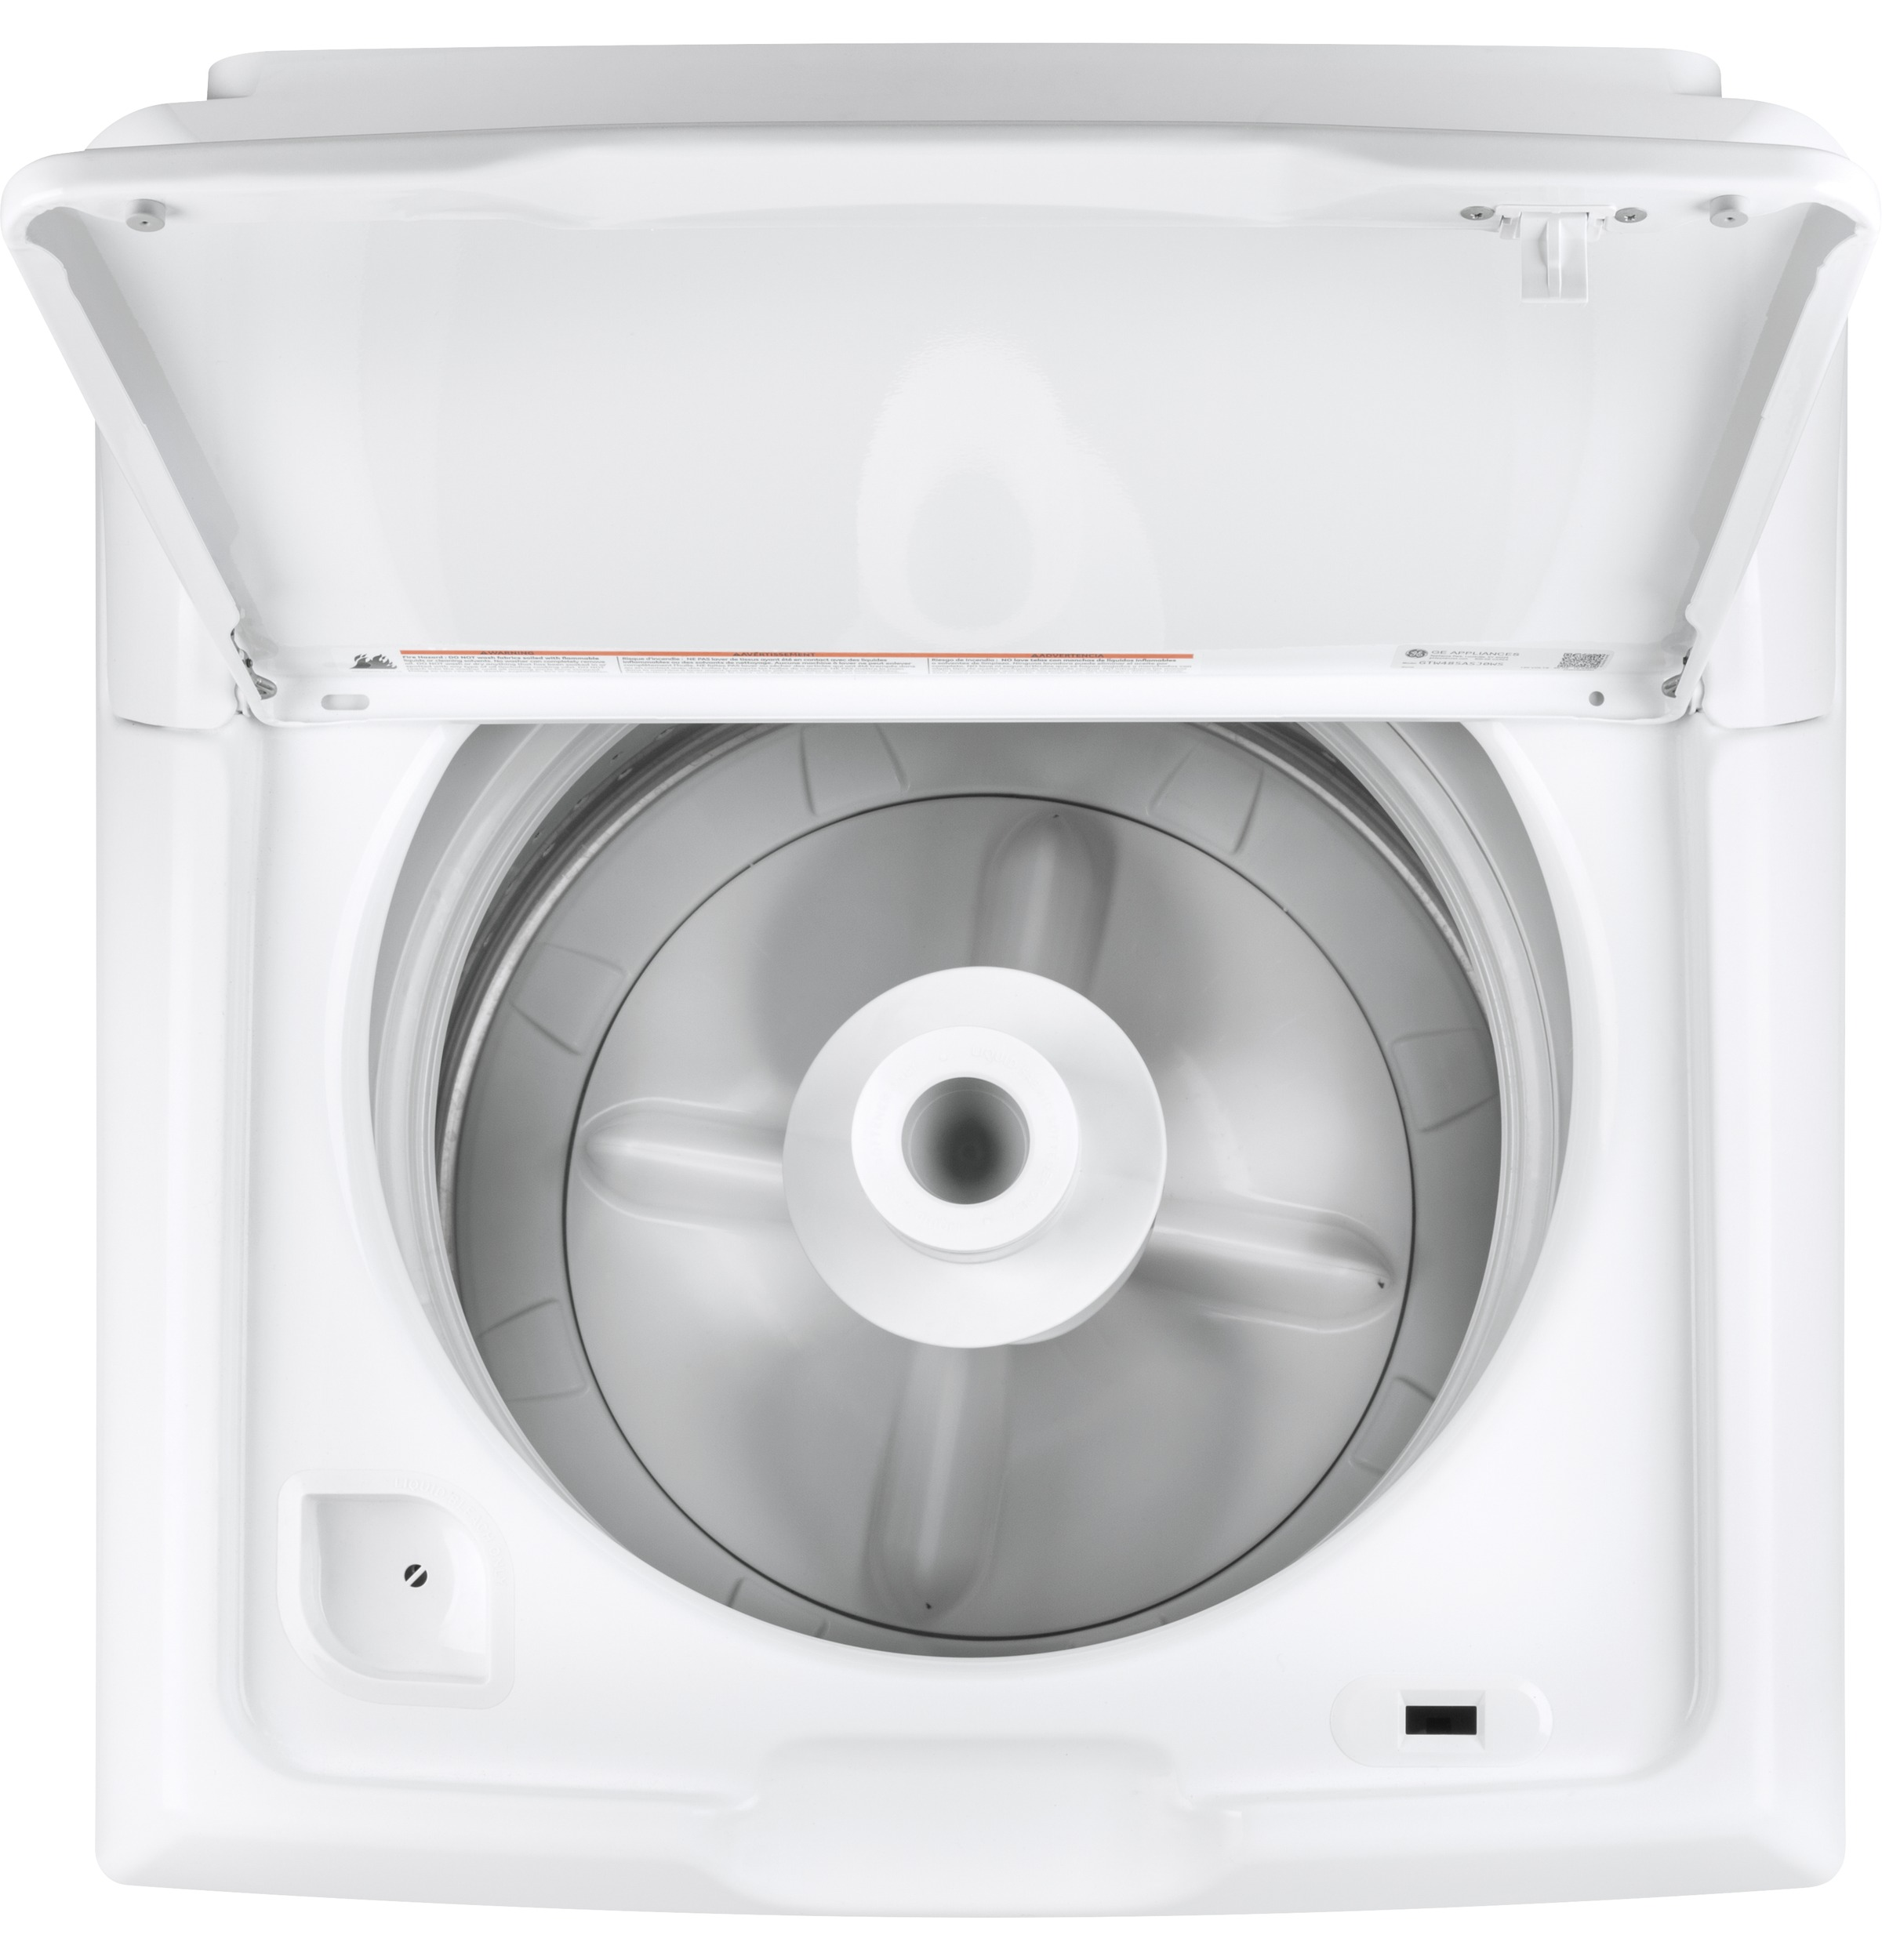 8717d3aaa91 GE - GTW335ASNWW - GE® 4.2 cu. ft. Capacity Washer with Stainless ...